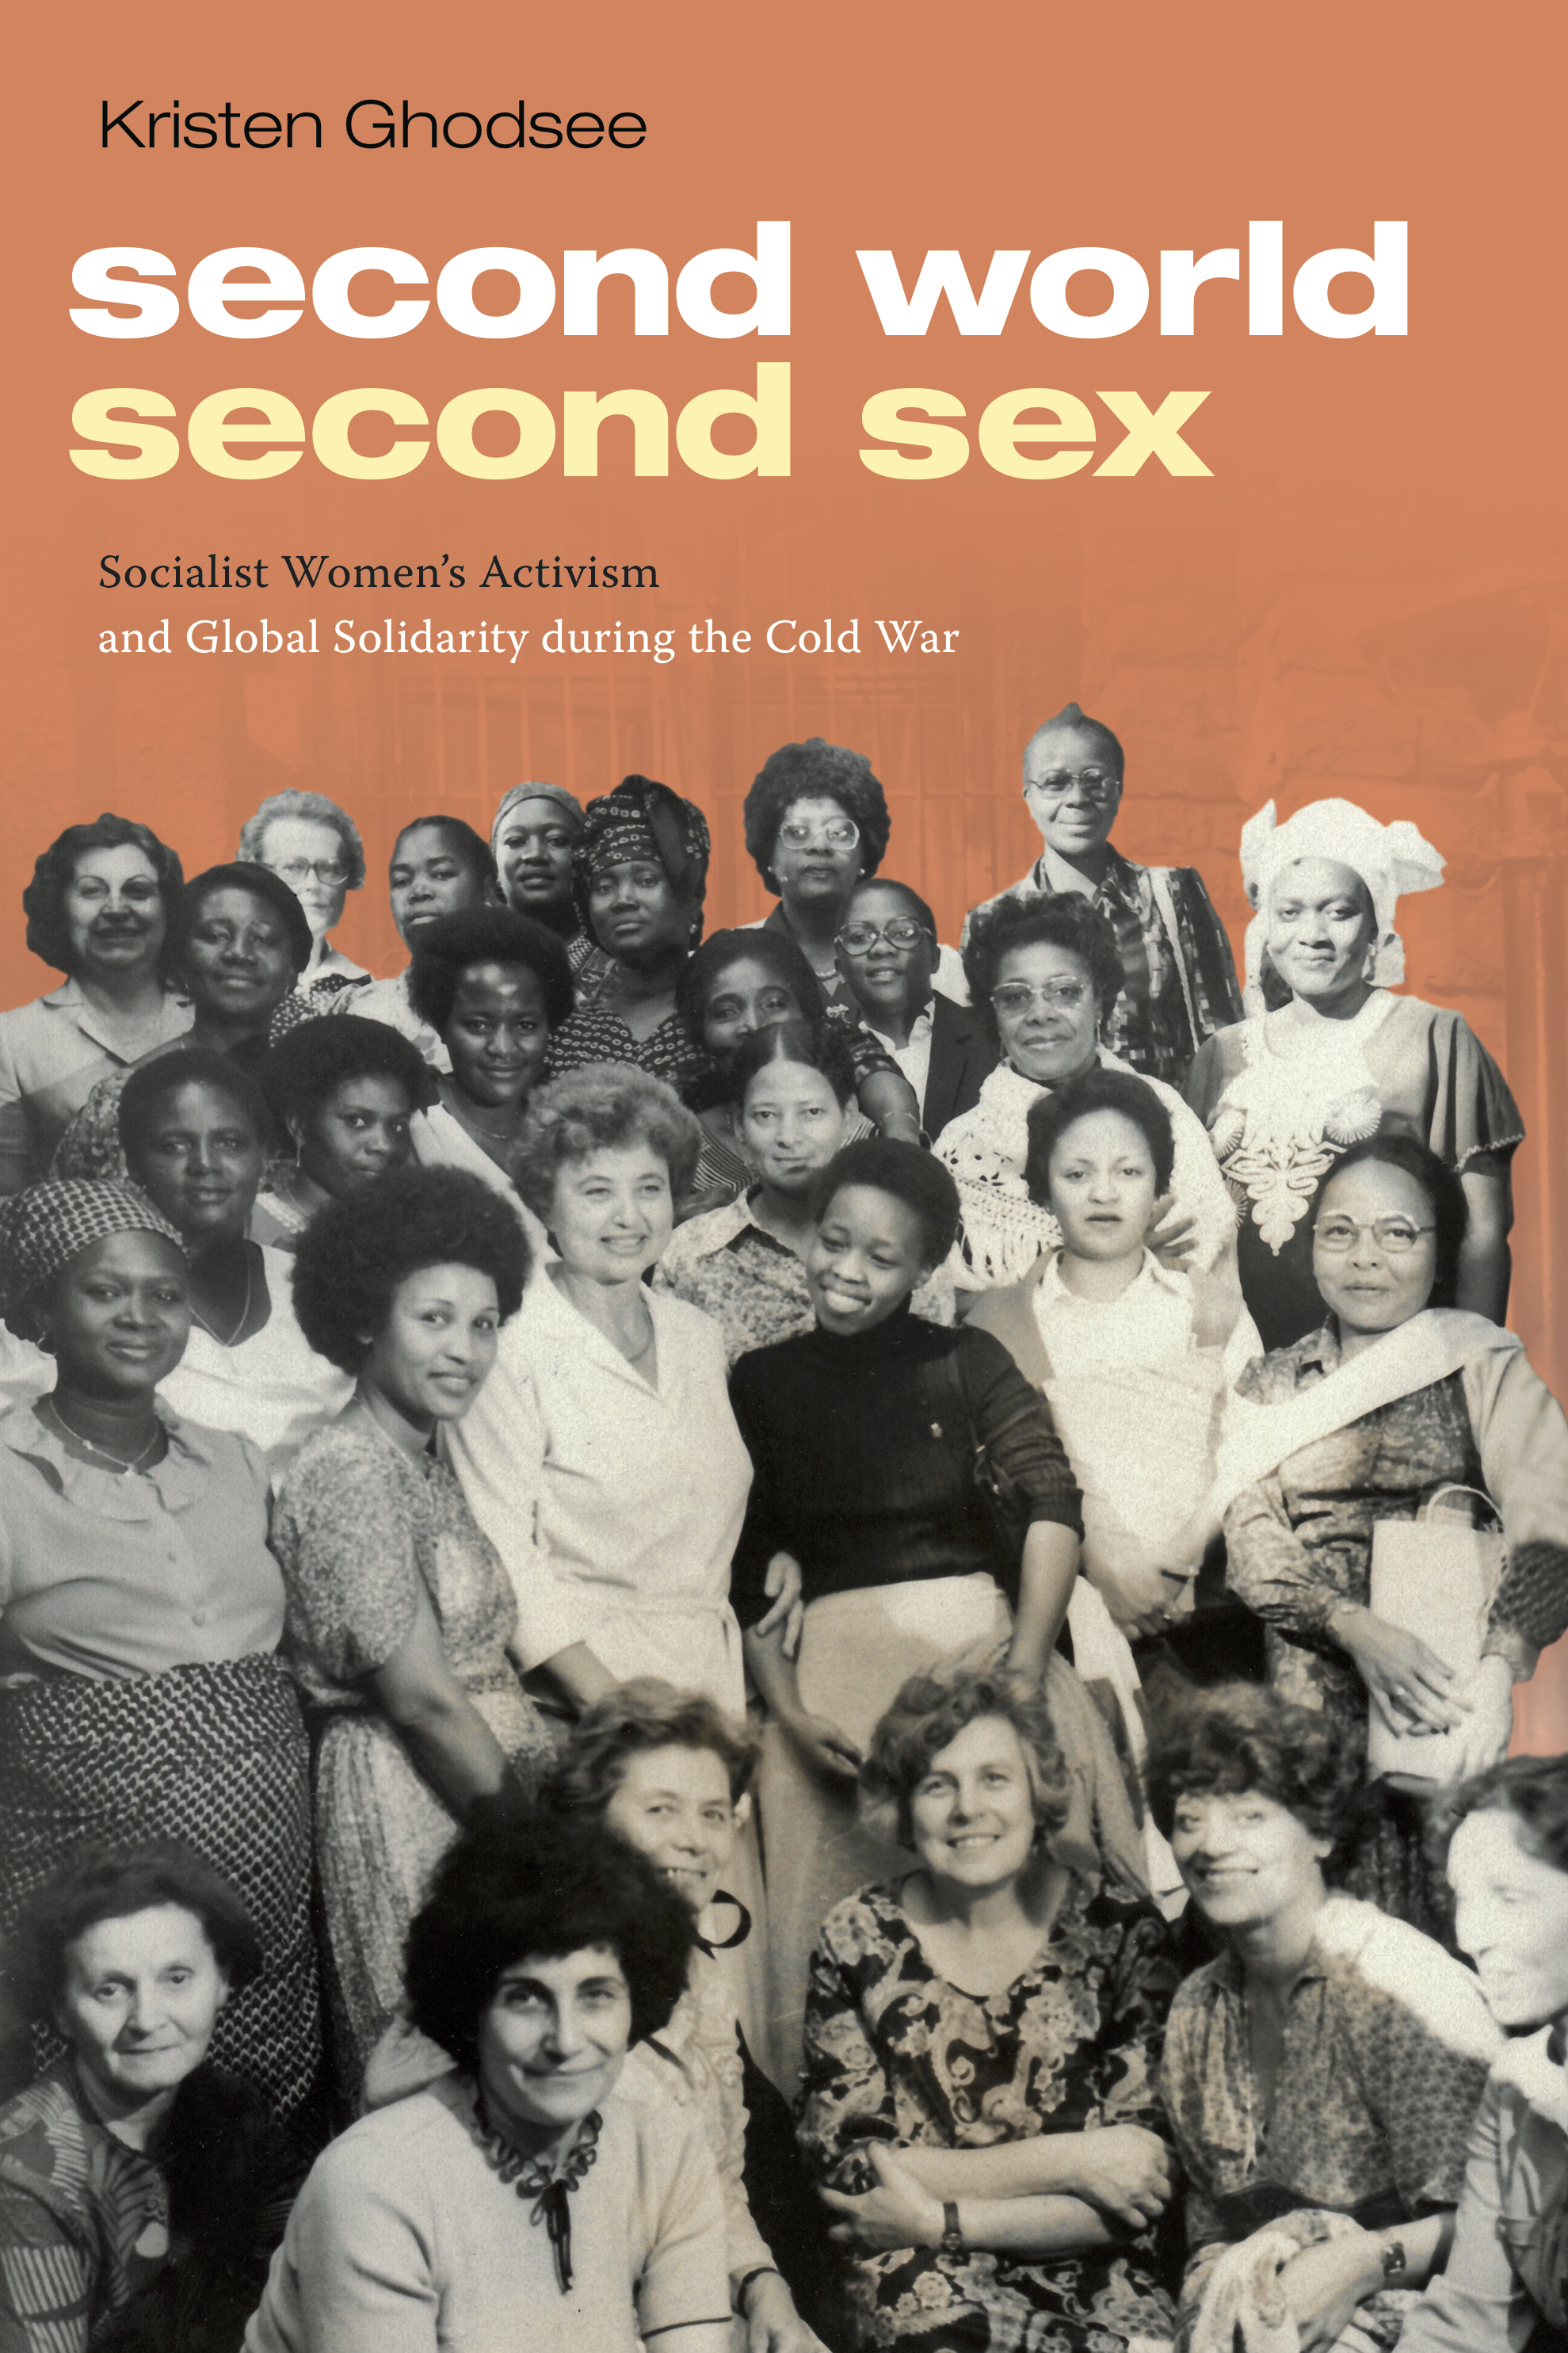 Second World Second Sex